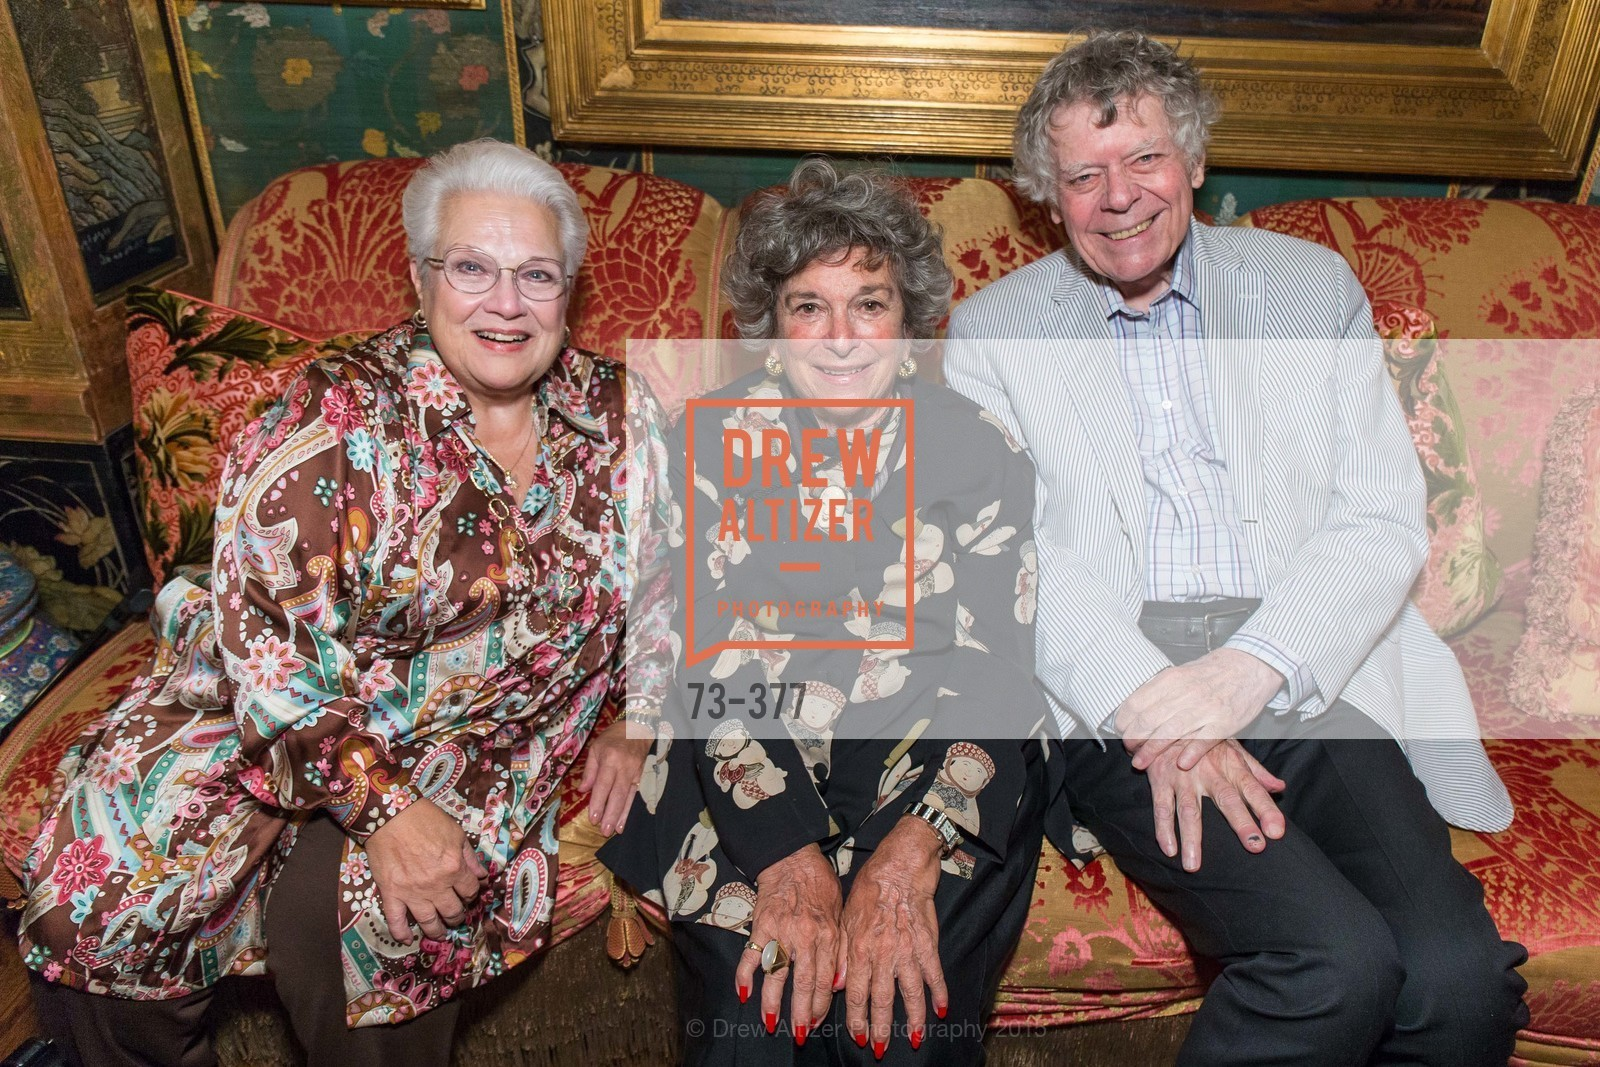 Marilyn Horne, Delia Ehrlich, Gordon Getty, Getty Host SF Conservatory of Music with Marilyn Horne, Private Residence, October 15th, 2015,Drew Altizer, Drew Altizer Photography, full-service agency, private events, San Francisco photographer, photographer california